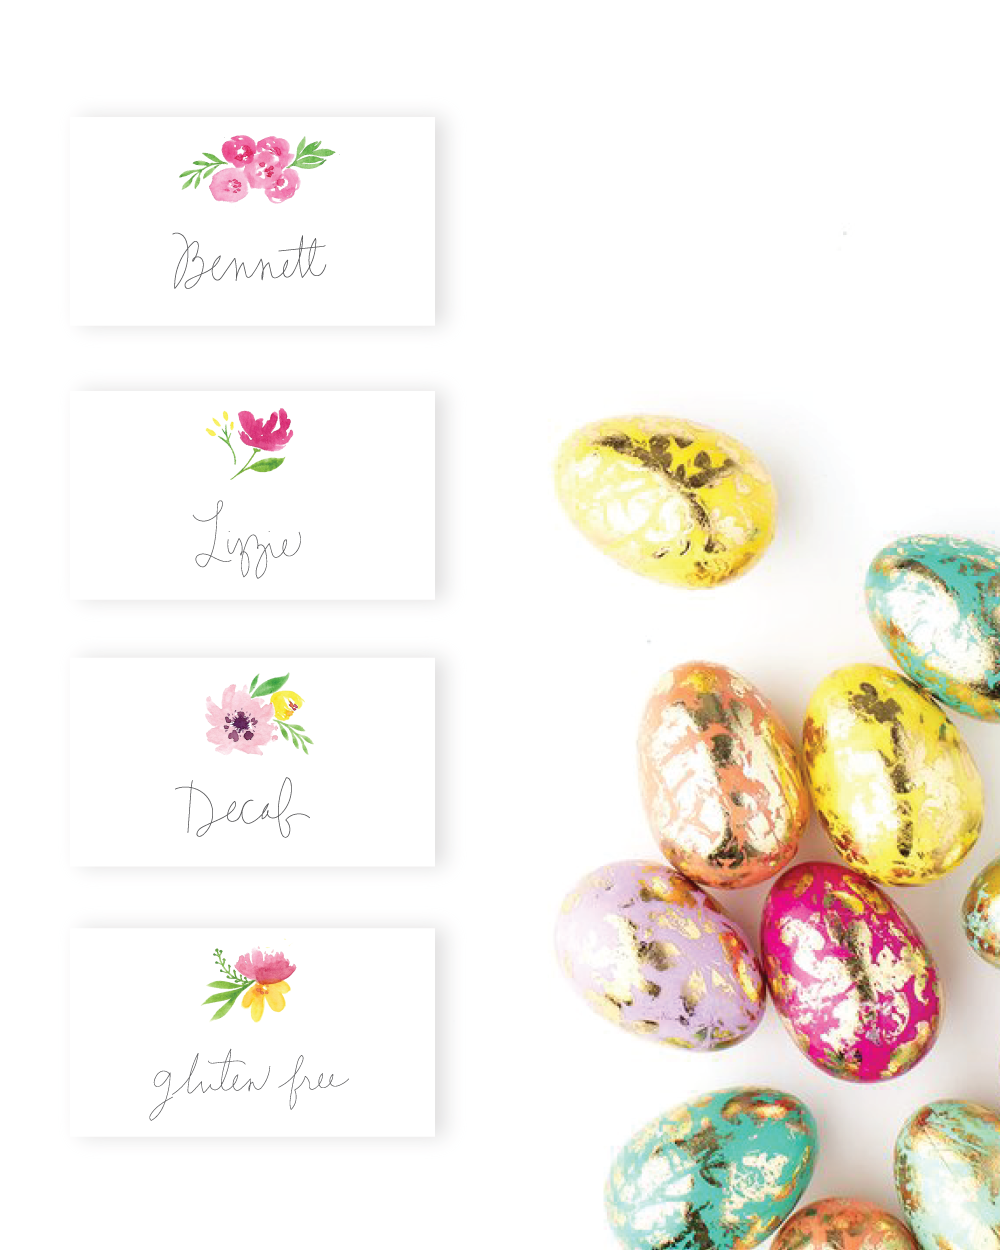 Free Download: Watercolor Floral Placecards for Easter (or Celebration!) • Delighted Creative Co. • delightedco.com